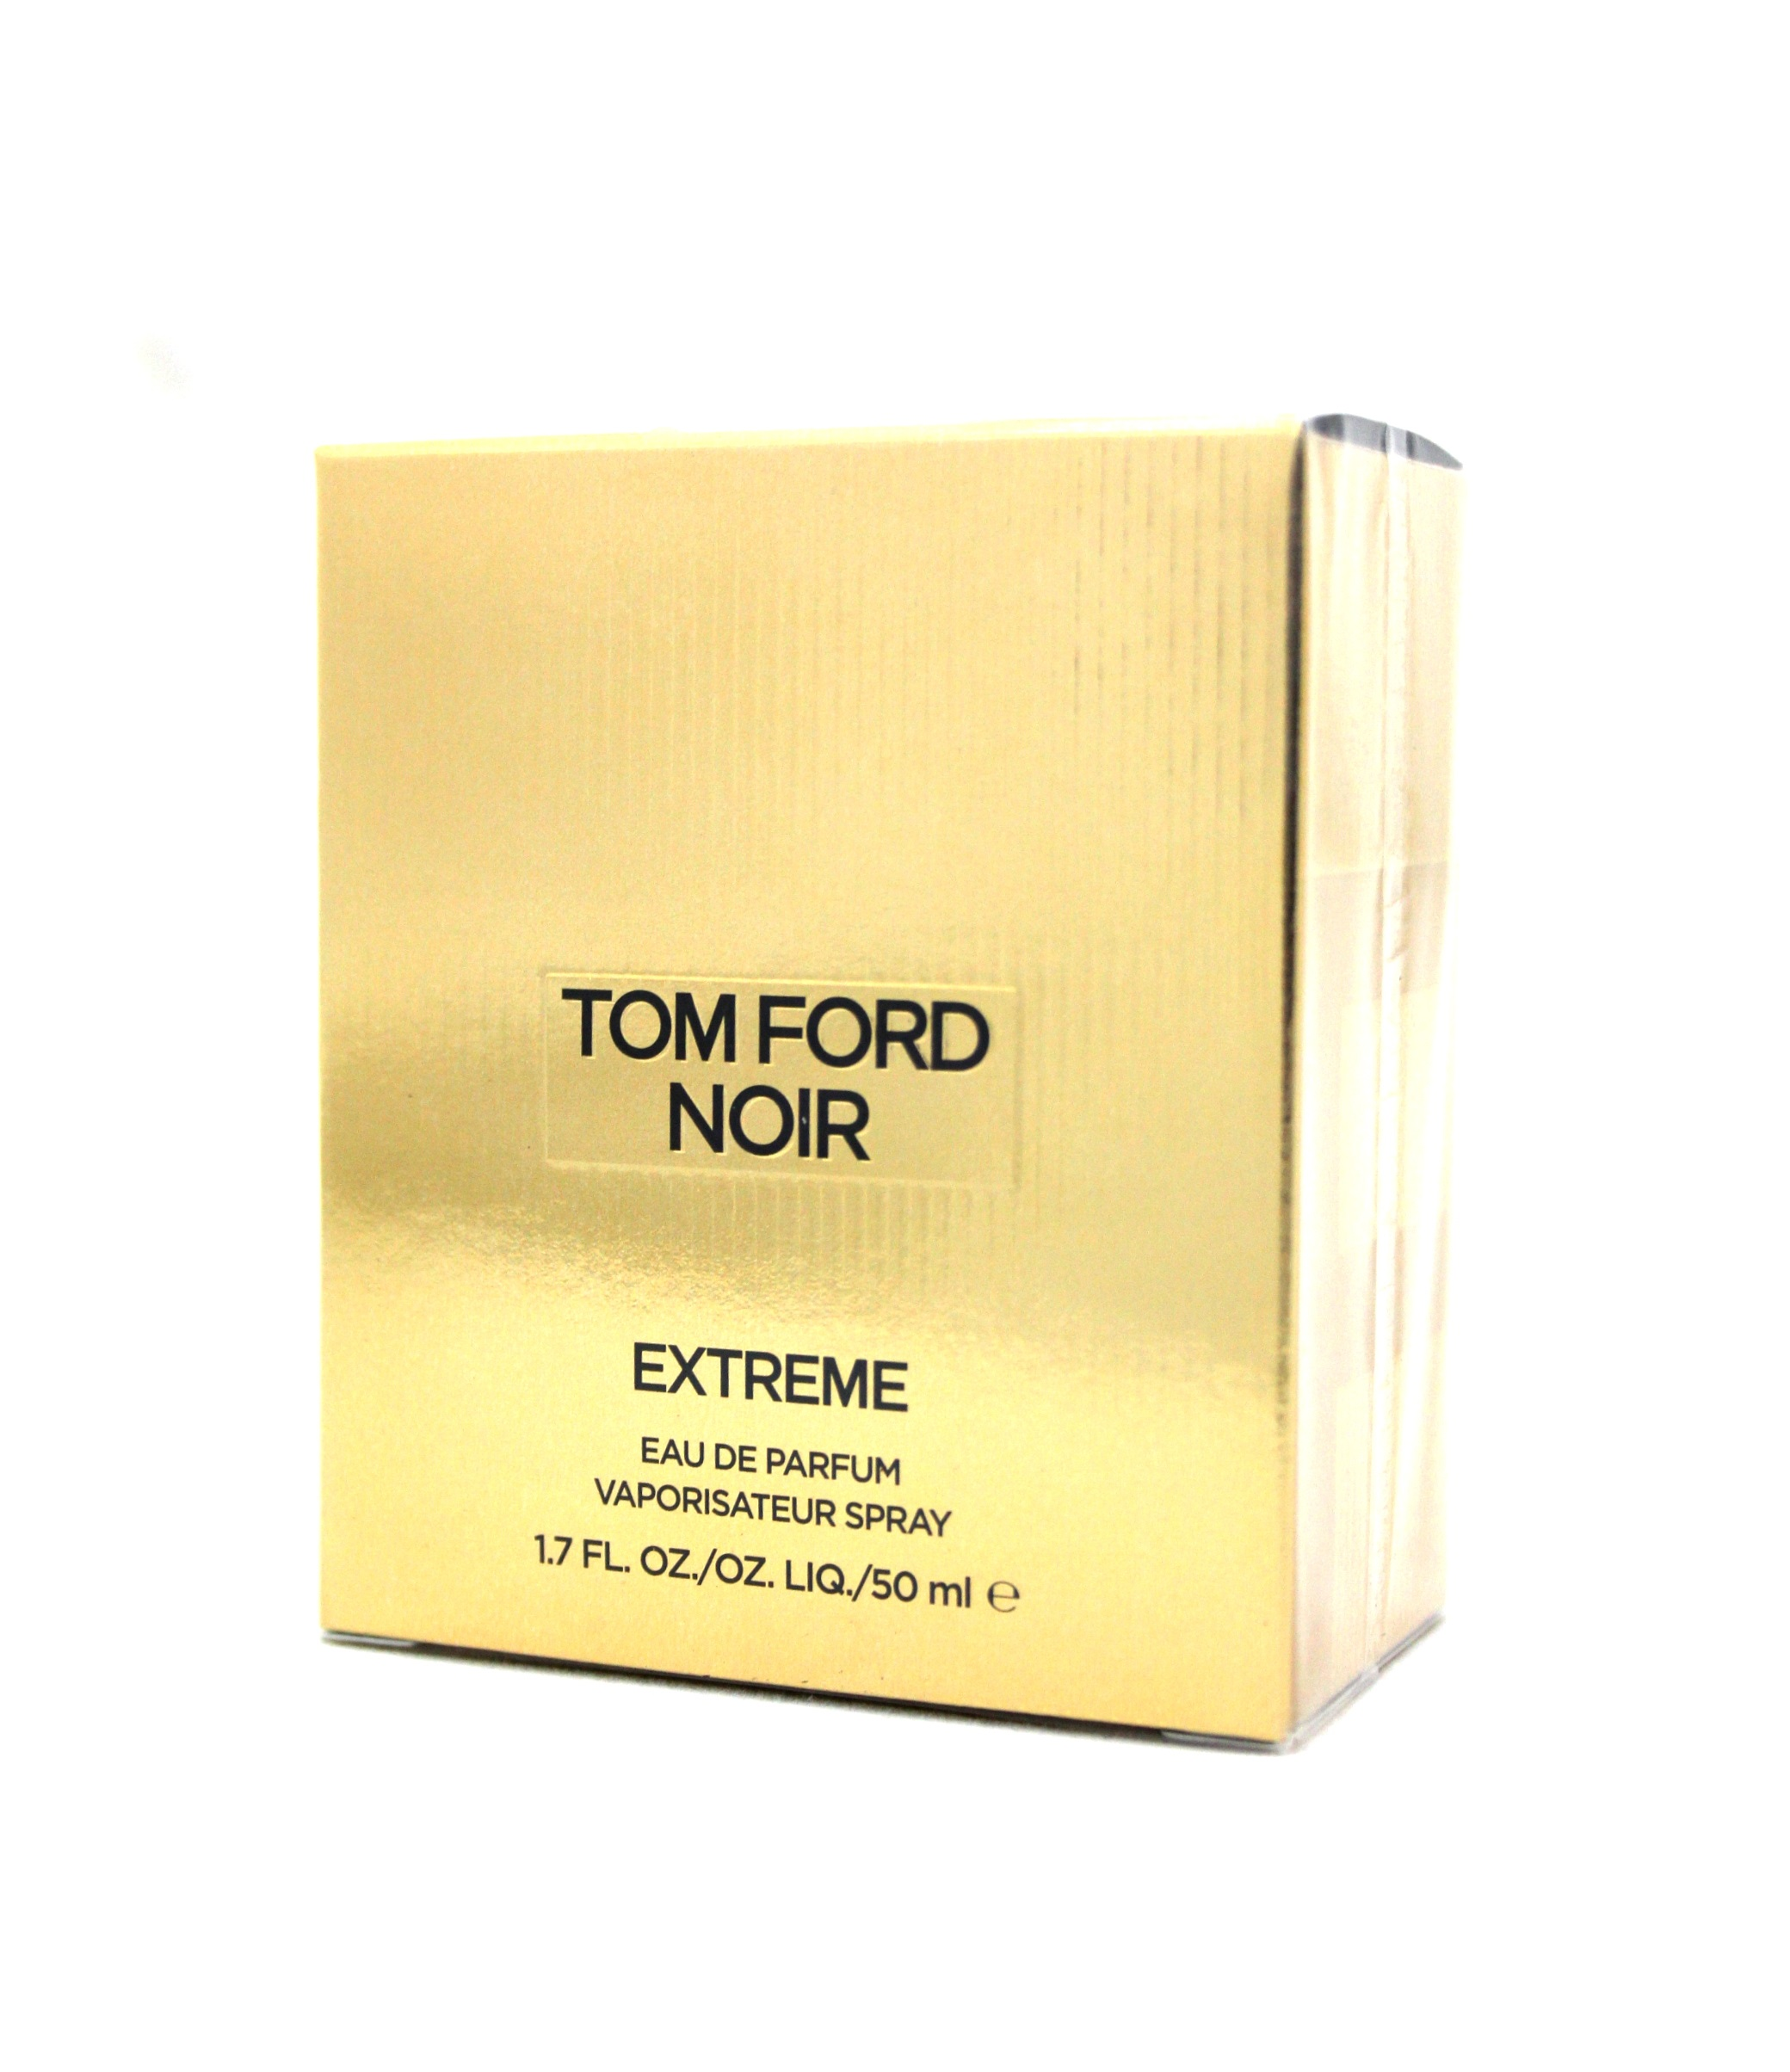 tom ford noir extreme eau de parfum edp f r m nner von tom. Black Bedroom Furniture Sets. Home Design Ideas